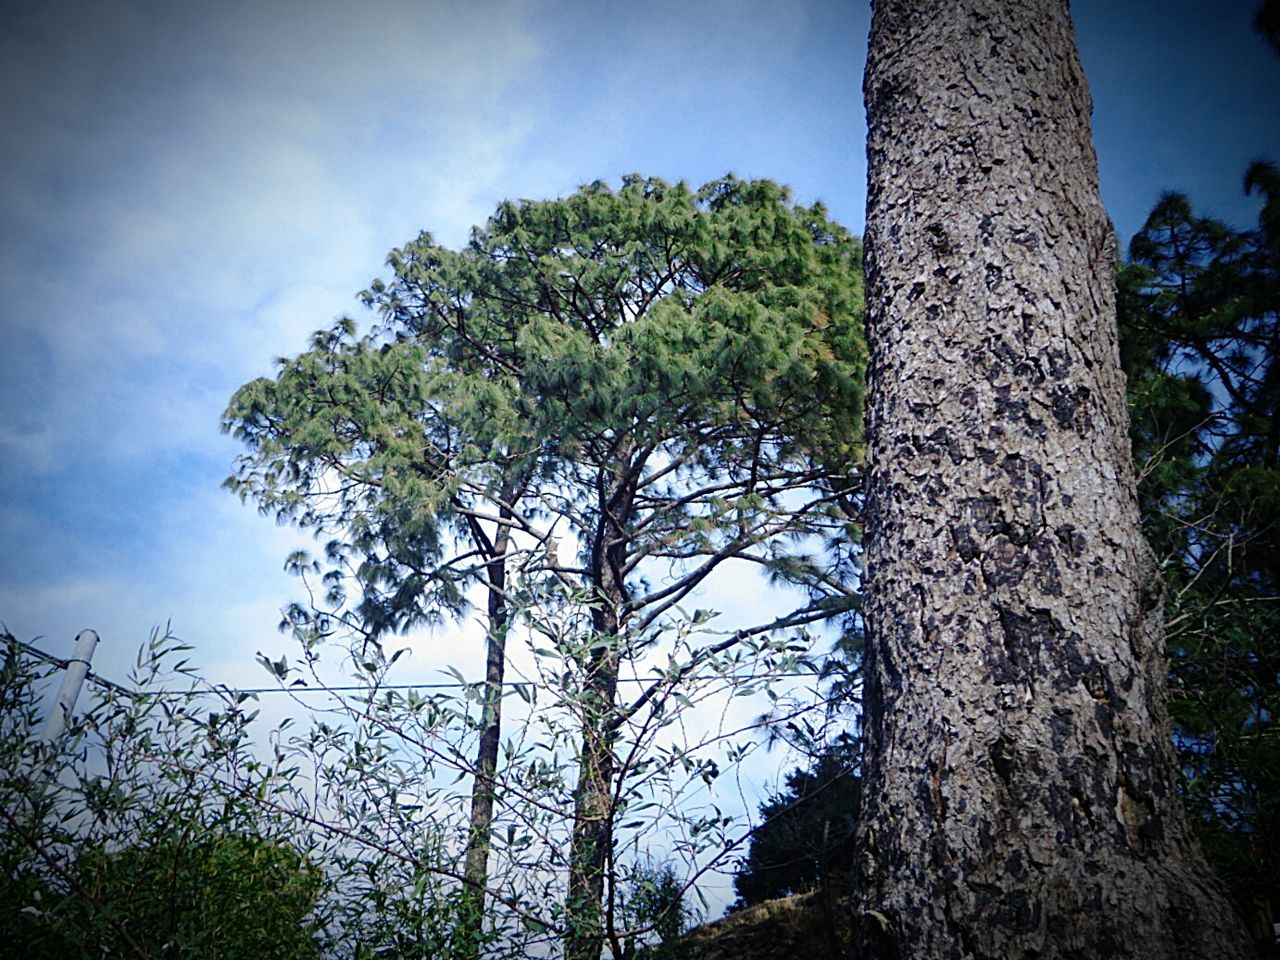 tree trunk, tree, nature, growth, day, forest, low angle view, no people, outdoors, tranquility, tranquil scene, beauty in nature, sky, scenics, branch, close-up